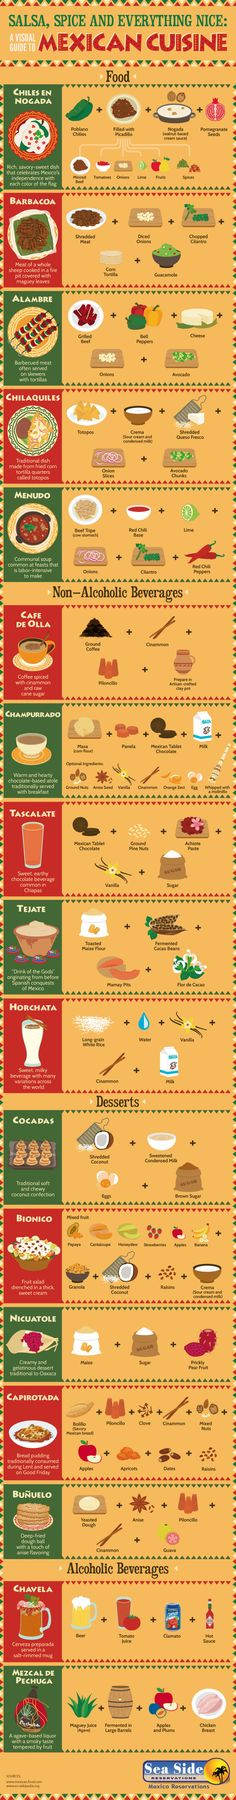 sugar-spice-and-everything-nice-a-visual-guide-to-mexican-cuisine_55354d140a161_w1500.png 1.500×11.446 píxeles